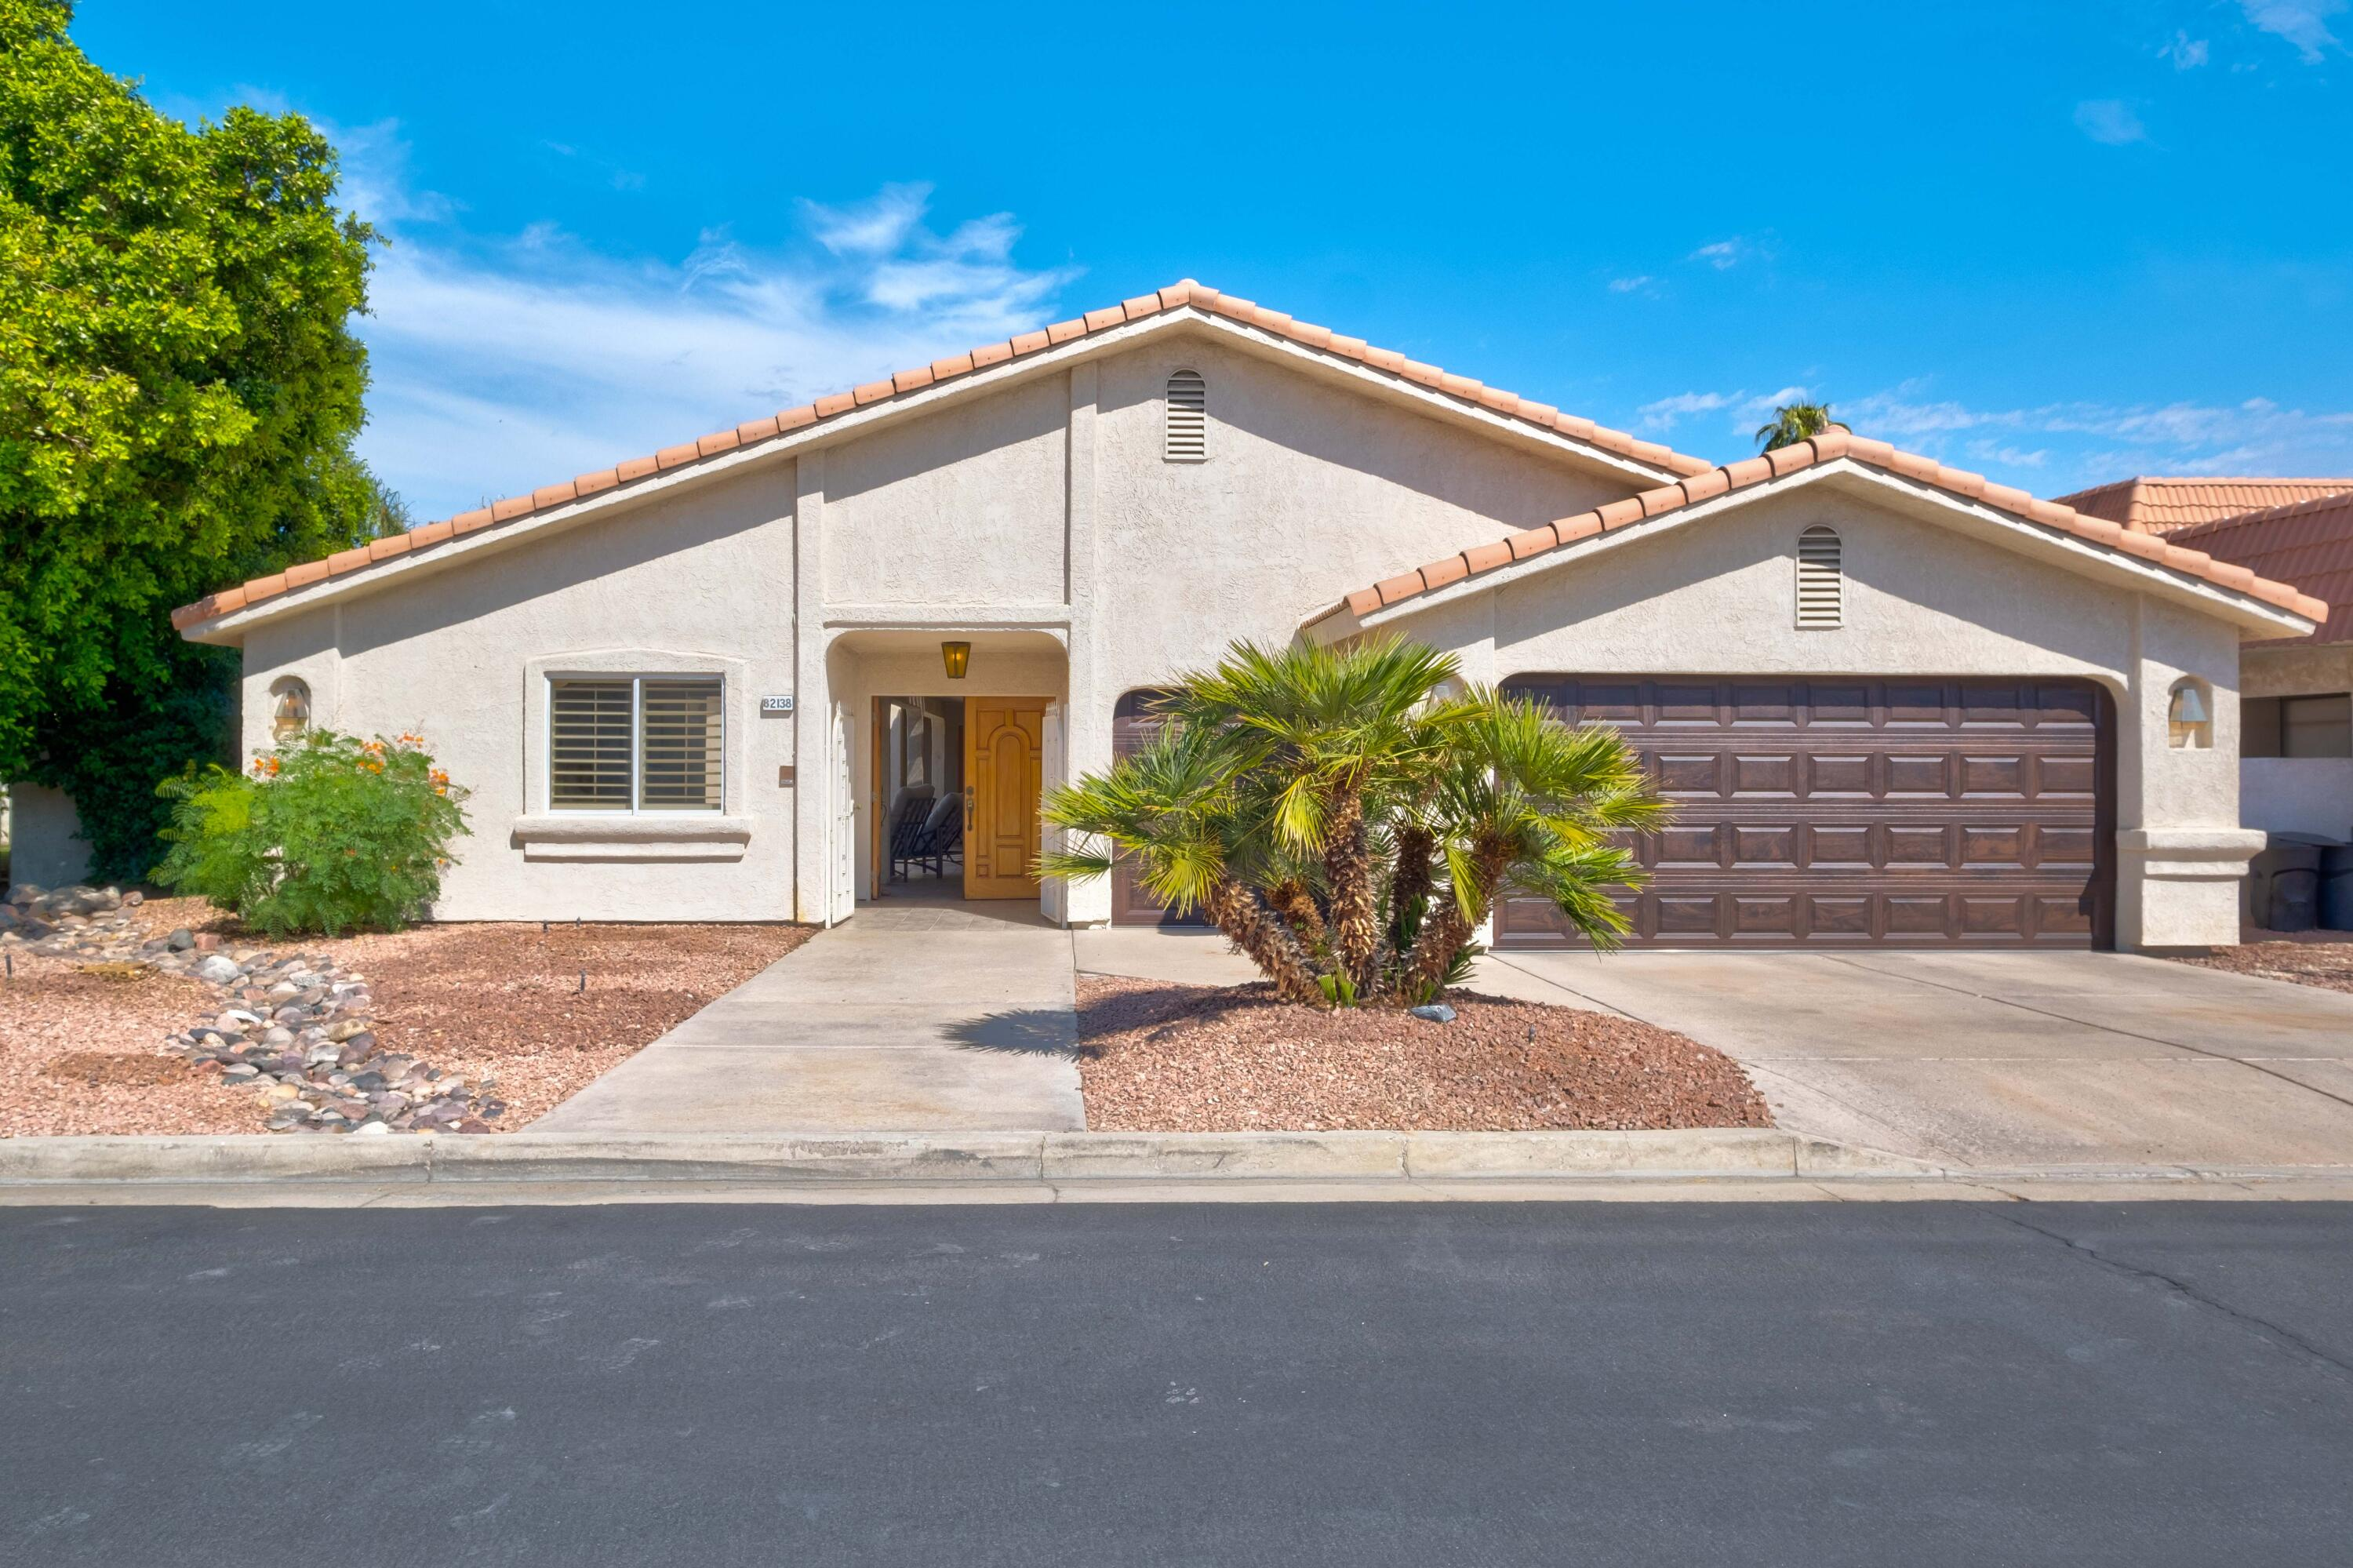 This beautiful legacy home is a large 3 bed / 3 bath, which includes a 1 bed / 1 bath detached casita and features a private courtyard with private pool and spa.   Double door courtyard access brings you to the formal entry, where you'll find two big living areas with large windows that frame the golf course and mountain views.  This immaculate home has a large mirrored formal dining room that is great for entertaining, a tiled kitchen with views from the kitchen sink and a built in office! The master suite features a big walk in closet / dressing room with a chandelier and glass slider access to the courtyard and pool.  You'll find plenty of storage space in the oversized laundry / utility room.  This home has been updated with new tile and carpet flooring and two brand new garage doors.  You'll find plenty of space in the two car garage with a separate golf cart garage.  The detached casita is spacious with 2 entries!  This is a unique opportunity for a second/vacation home.  30-day minimum rentals and you can't beat the LOW HOA's!  The Indian Palms community features community pools, fitness center, restaurant, public golf course and pro shop and guarded gate access.